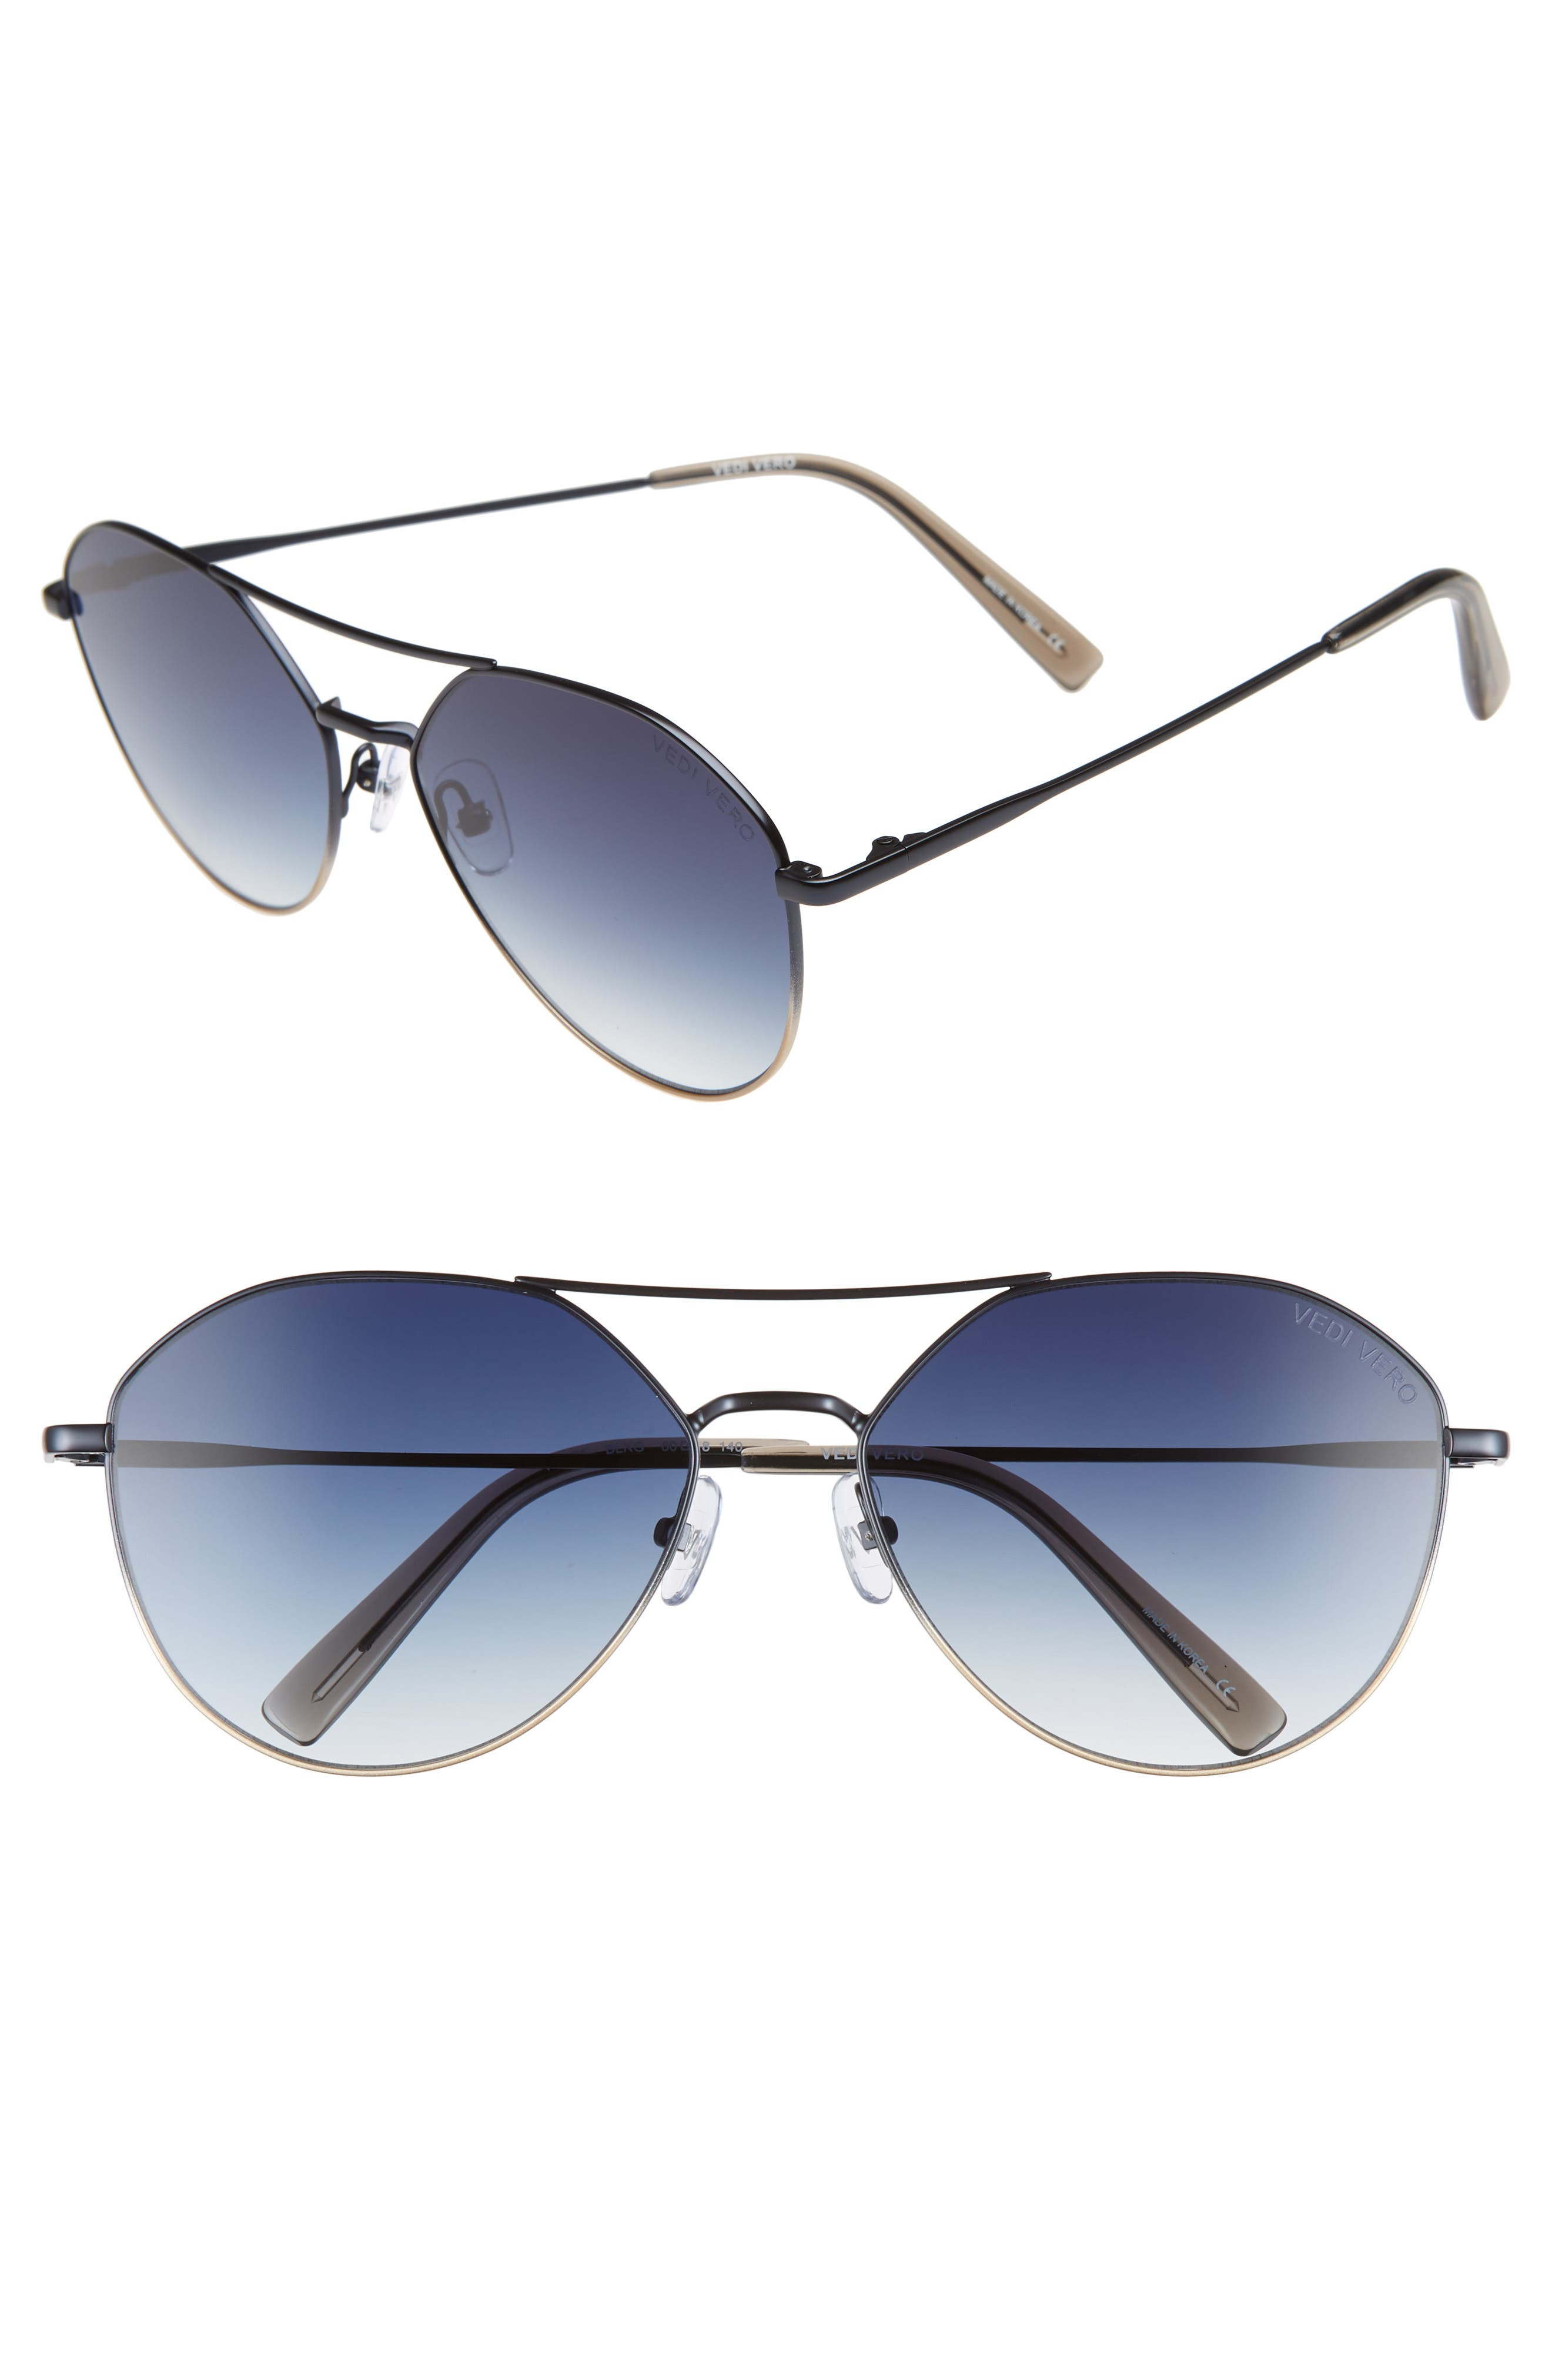 VEDI VERO 60Mm Aviator Sunglasses - Black/ Dark Navy/ Gold